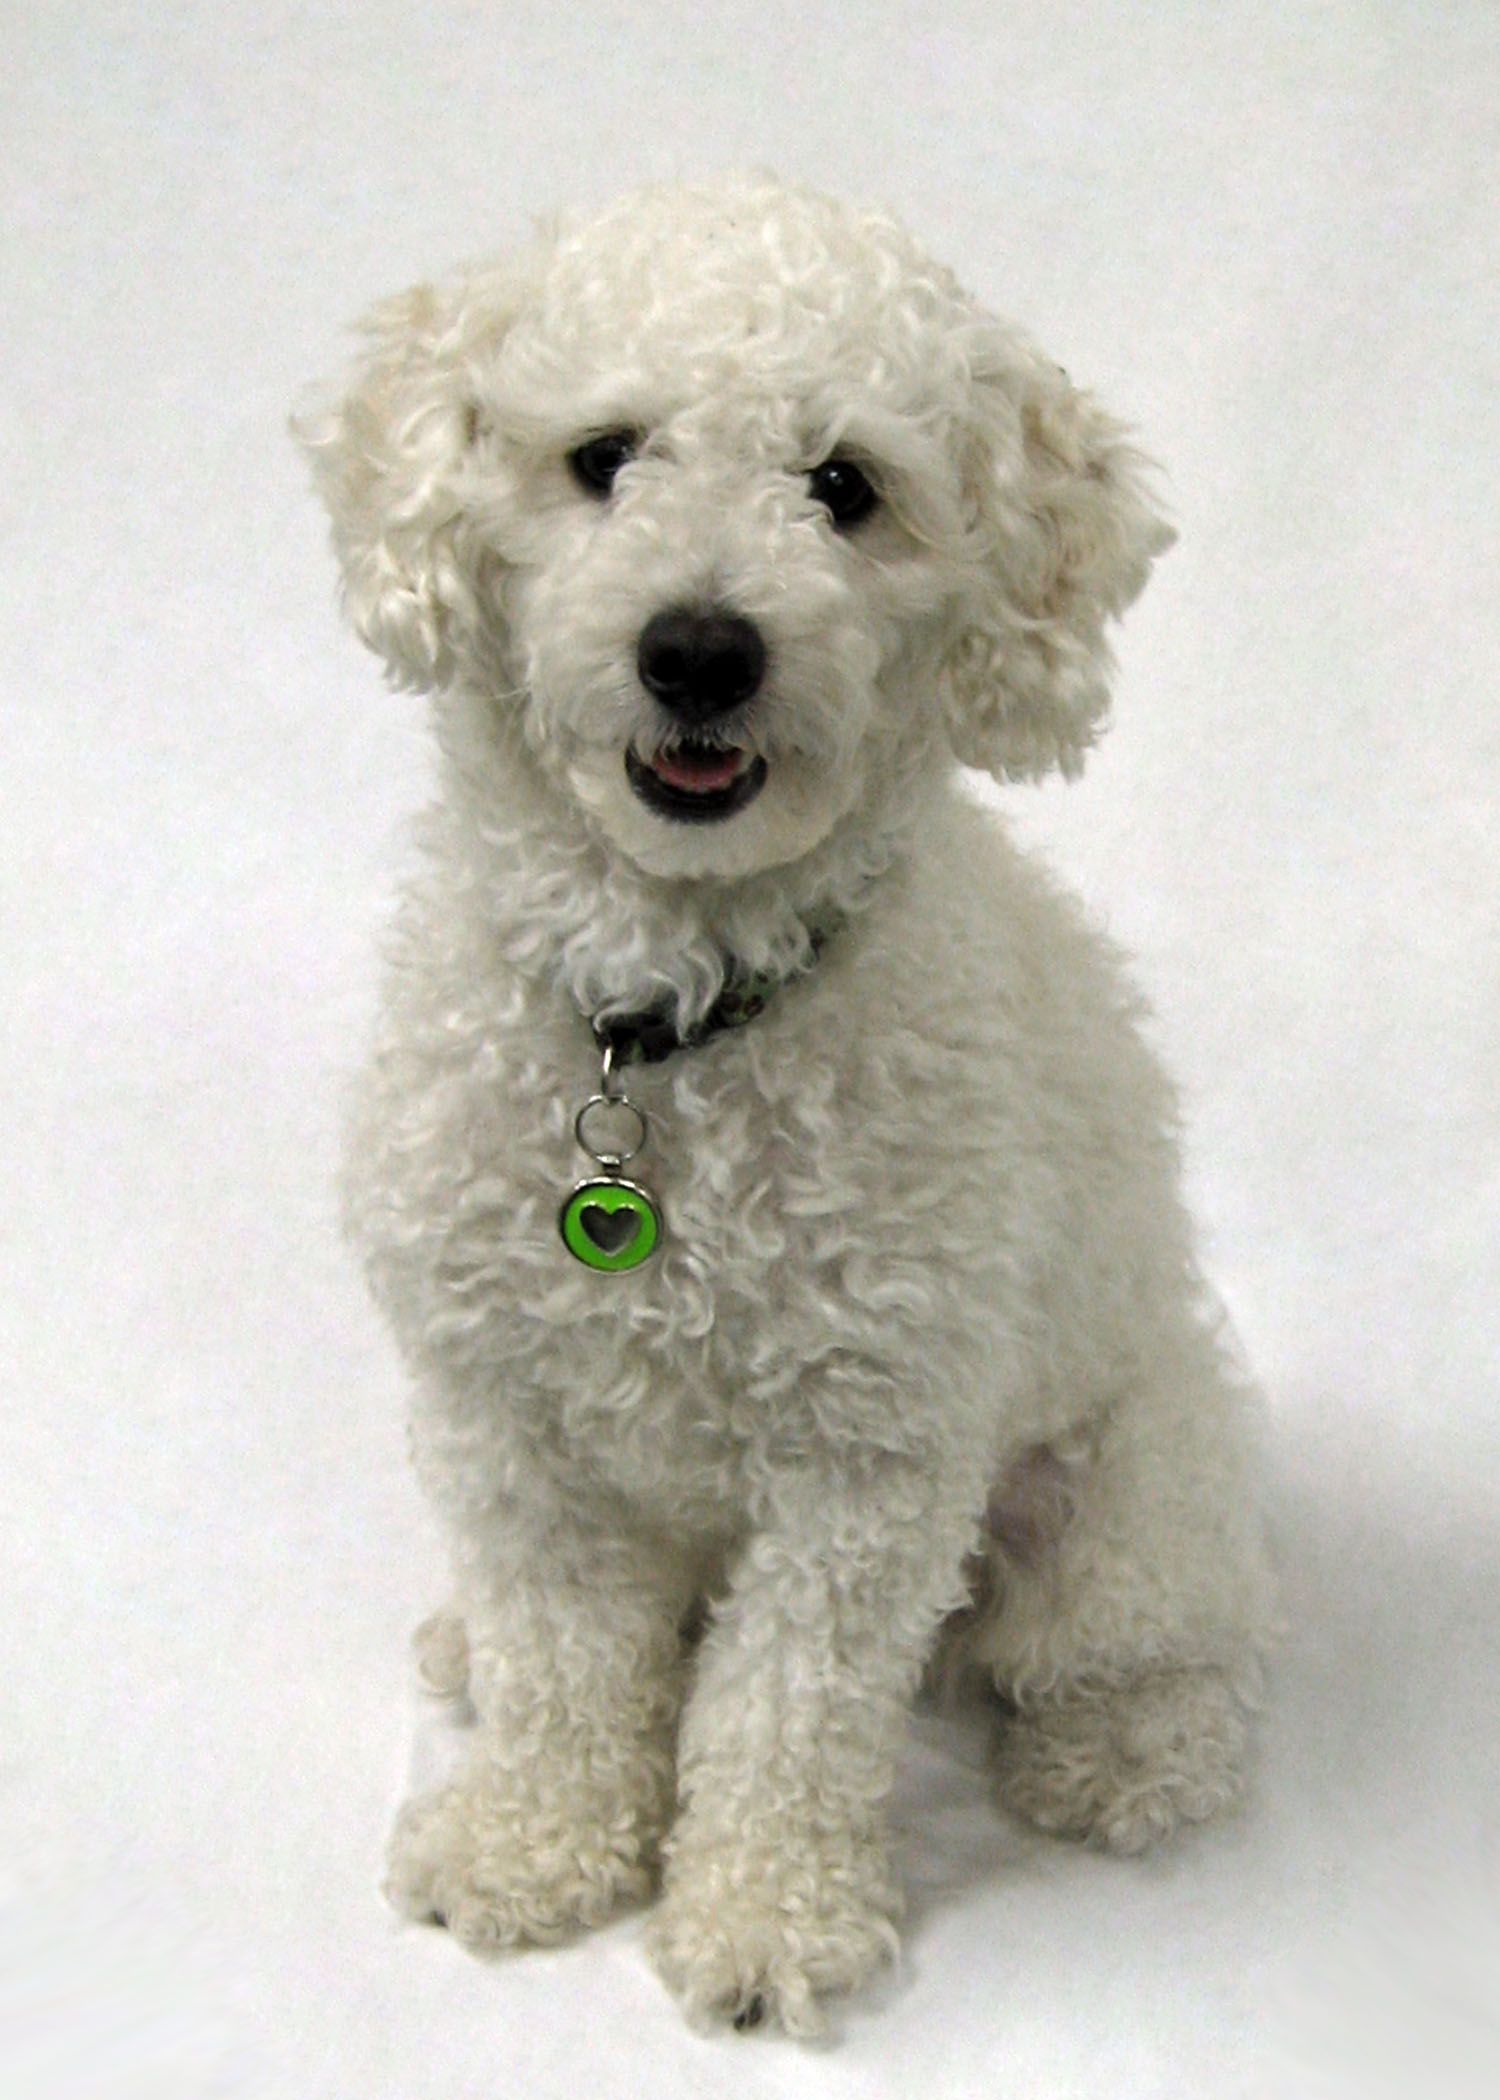 Looks Like My Dog Rylee Bichon Poodle Mix Poochon This